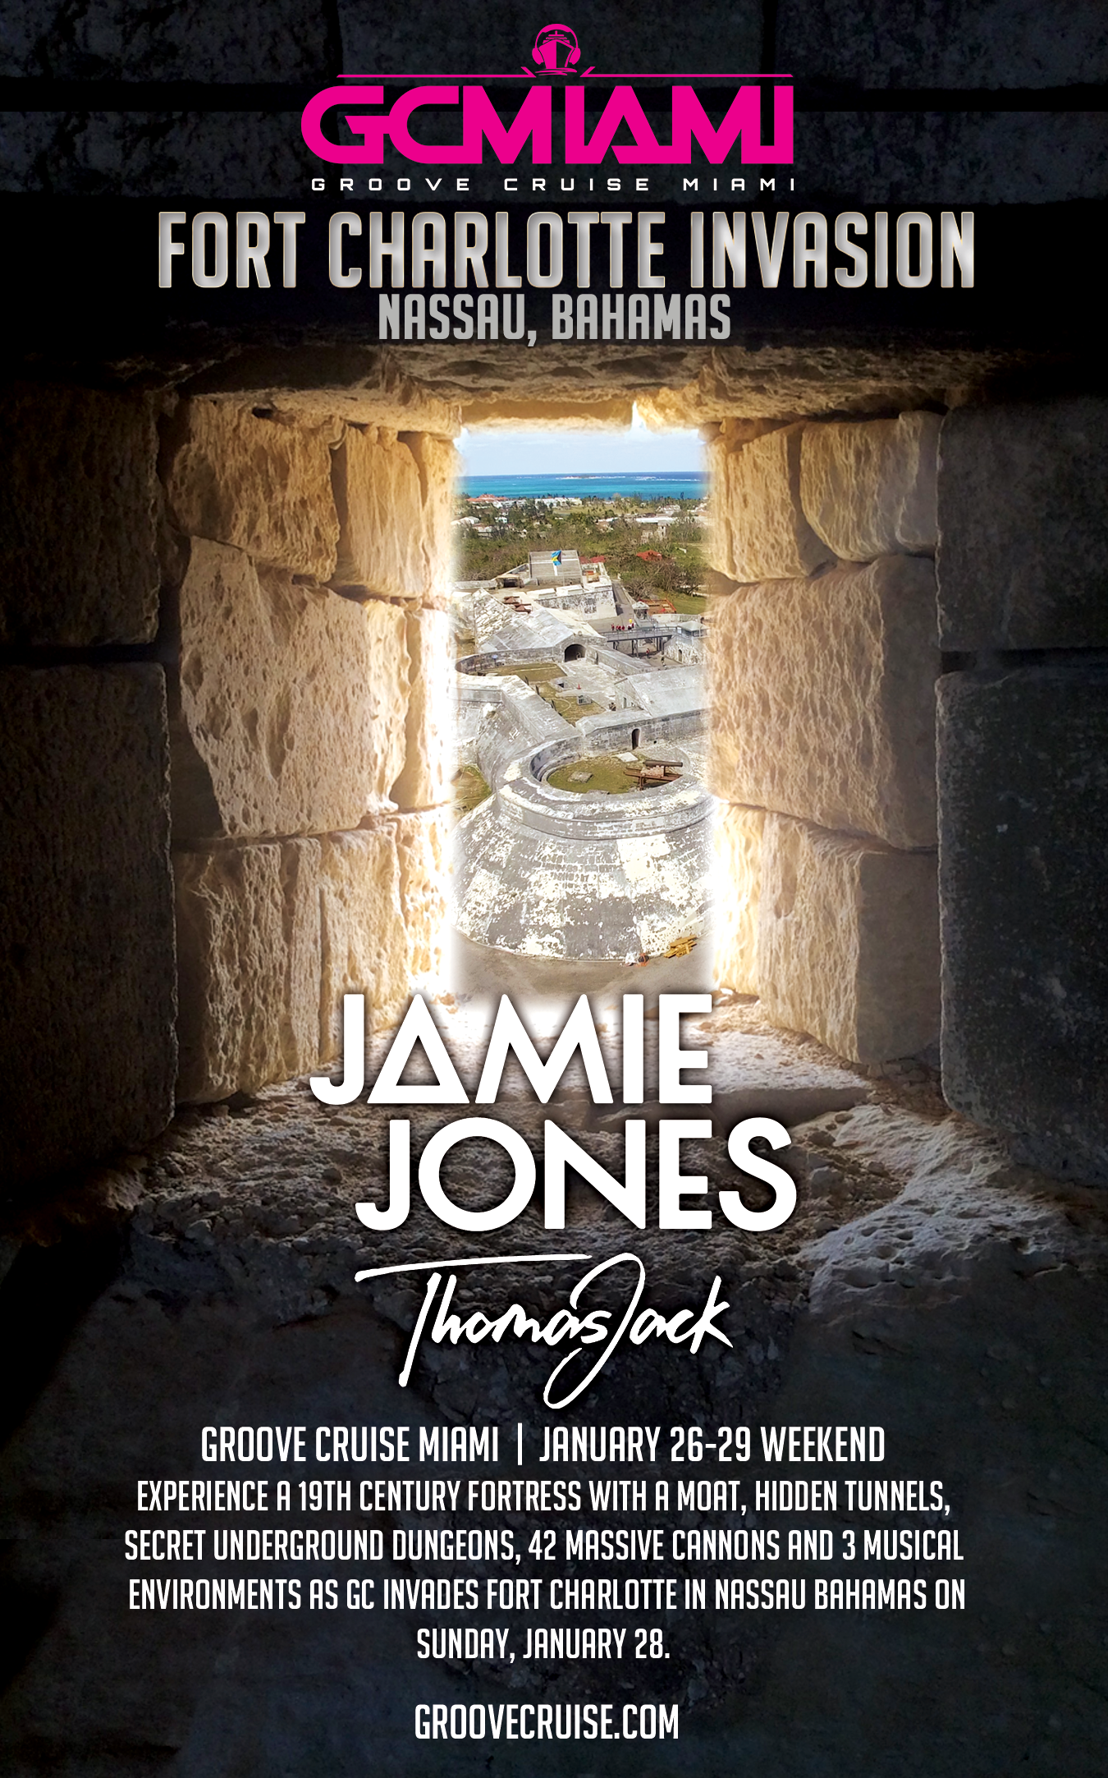 Jamie Jones and Thomas Jack to headline 19th Century Fort Charlotte Invasion in Nassau Bahamas during Groove Cruise Miami 2018